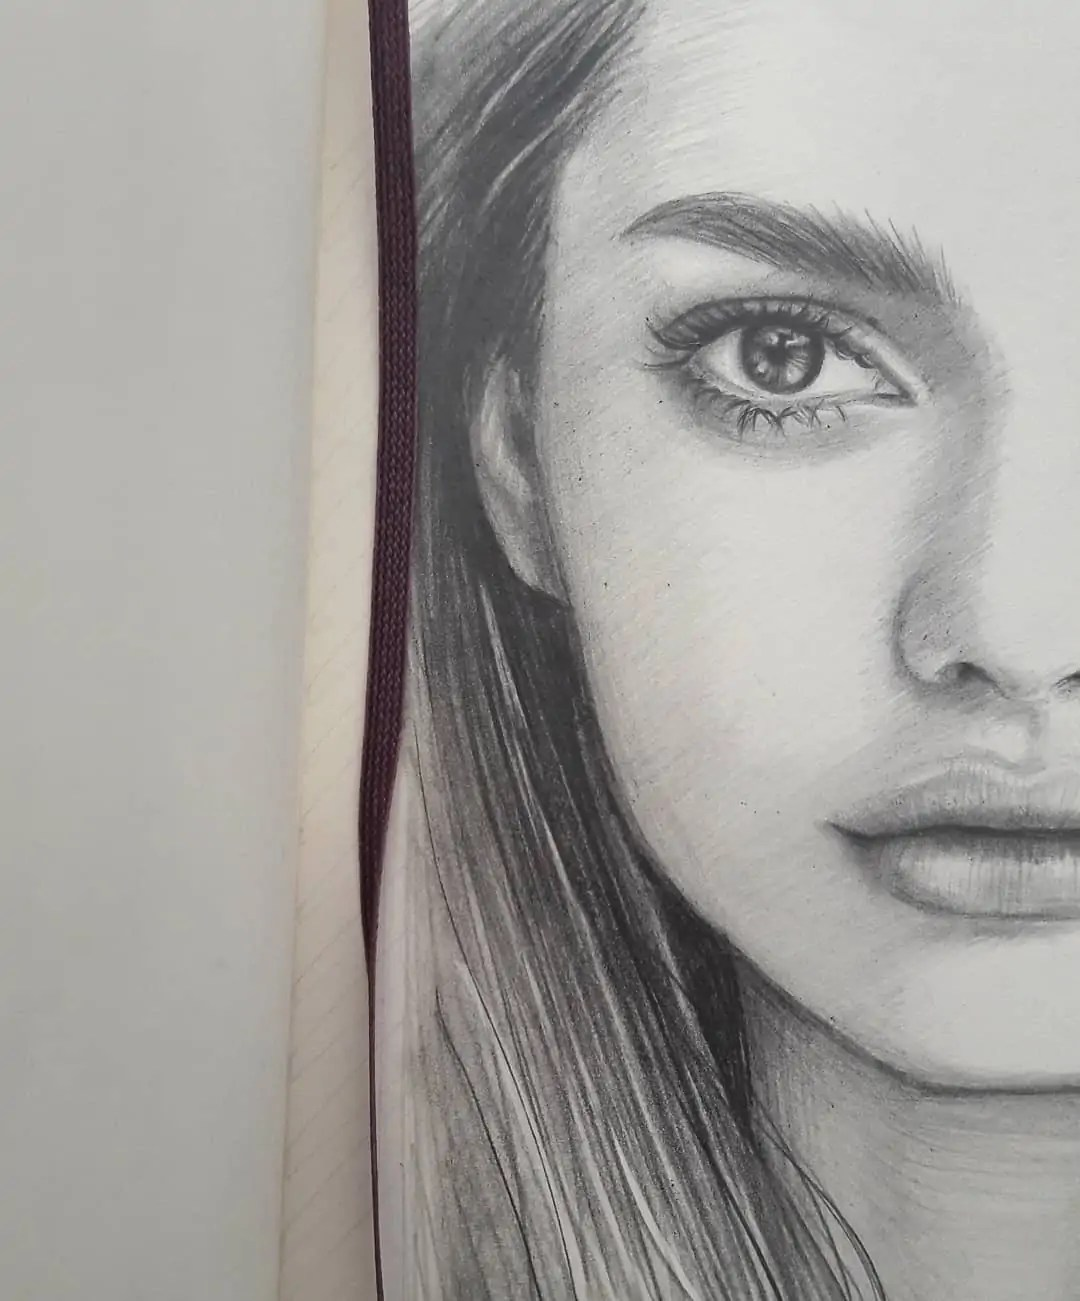 100+ Stunning Realistic Portrait Drawings 277